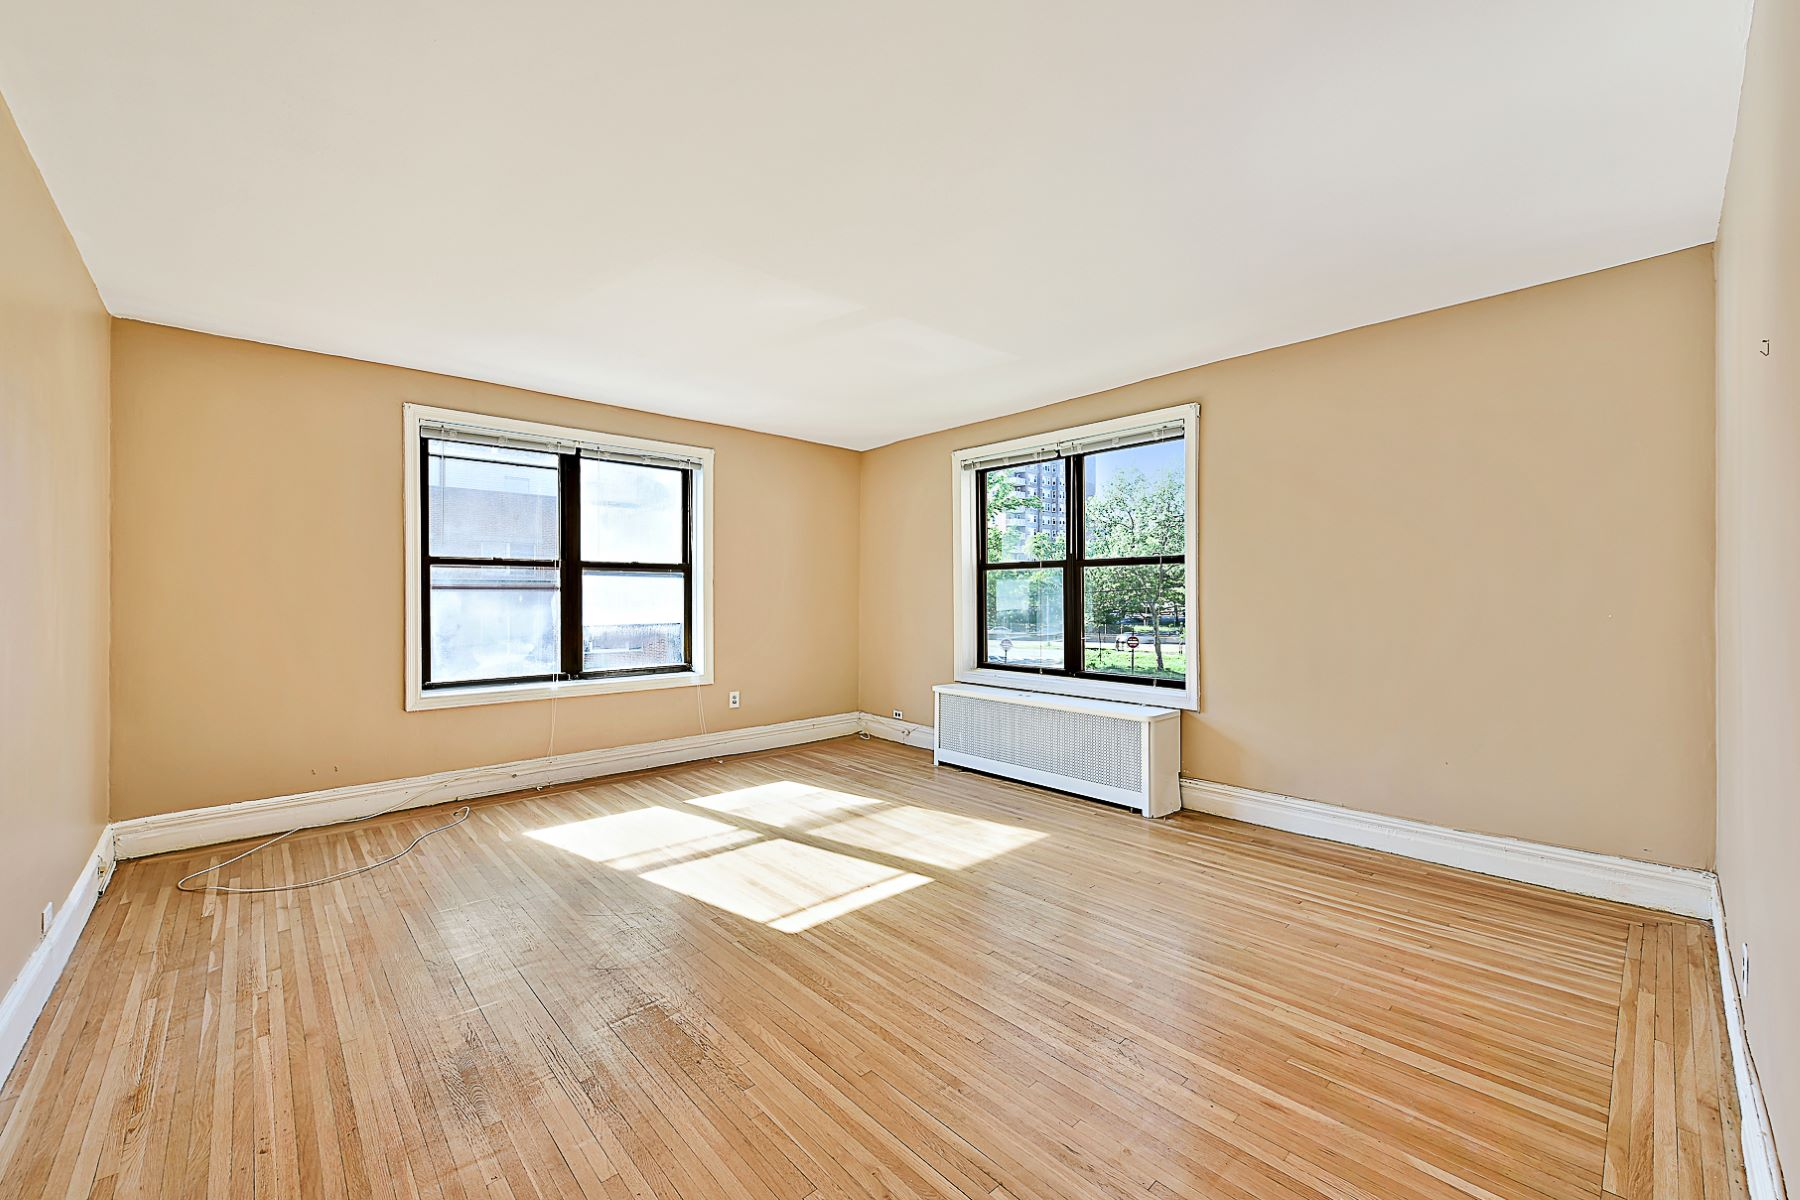 Co-op for Sale at Pre-war Corner 2 BR Layout on Johnson Avenue 3656 Johnson Avenue 2D Riverdale, New York 10463 United States